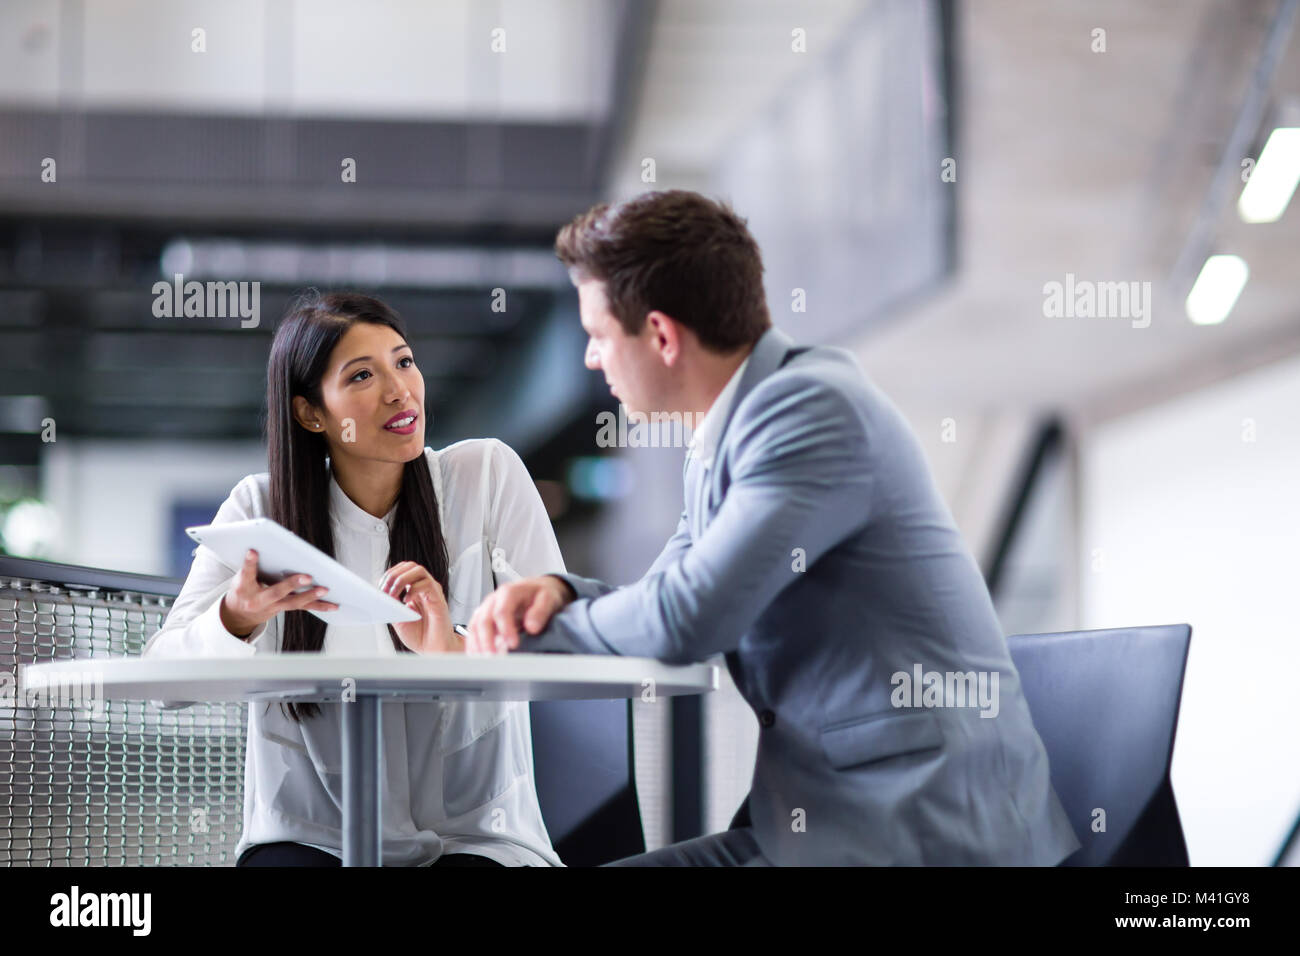 Colleagues in an informal business meeting using a digital tablet - Stock Image